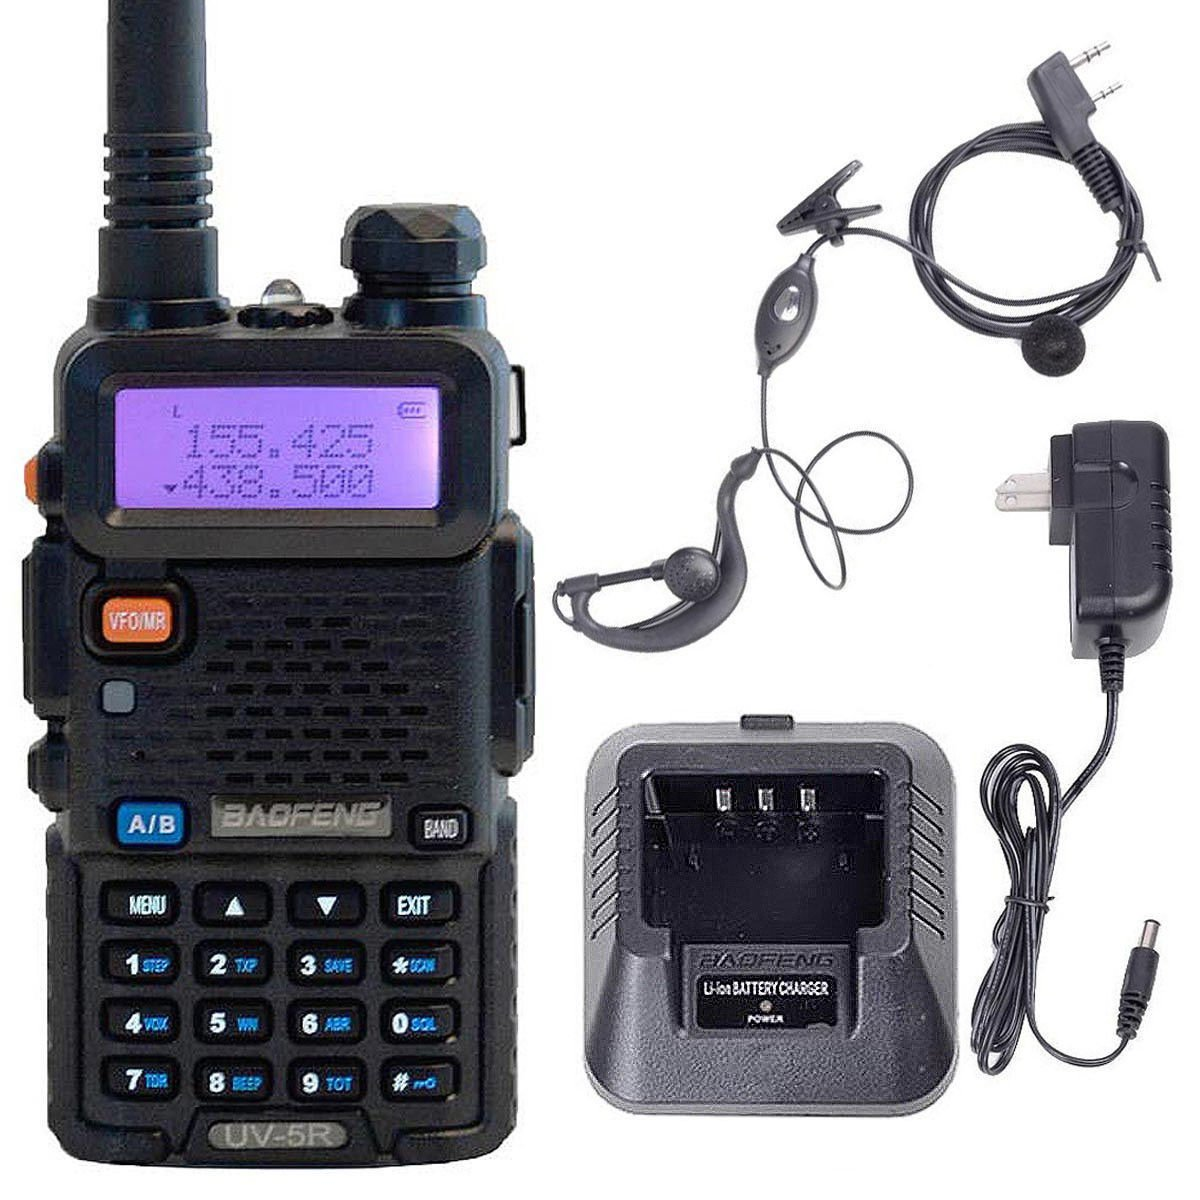 Safstar Rechargeable Walkie Talkies Two Way Radio UV-5R High Power Dual Band Interphone for Hiking Camping Trolling